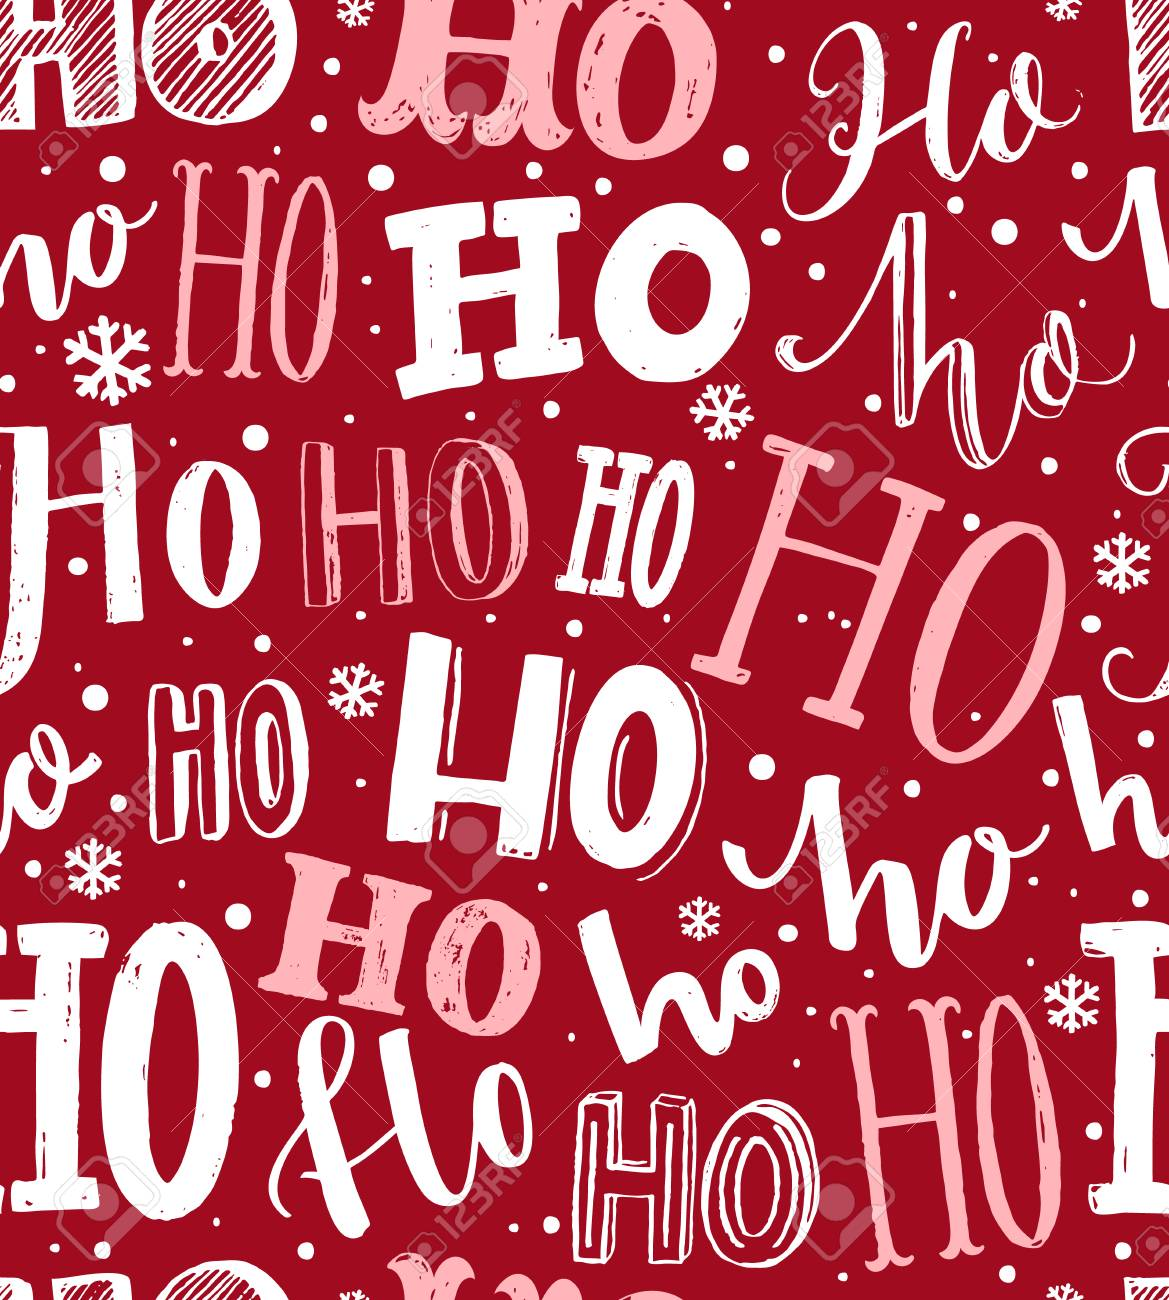 Ho ho ho pattern funny christmas background for gift wrapping funny christmas background for gift wrapping white lettering and hand negle Images